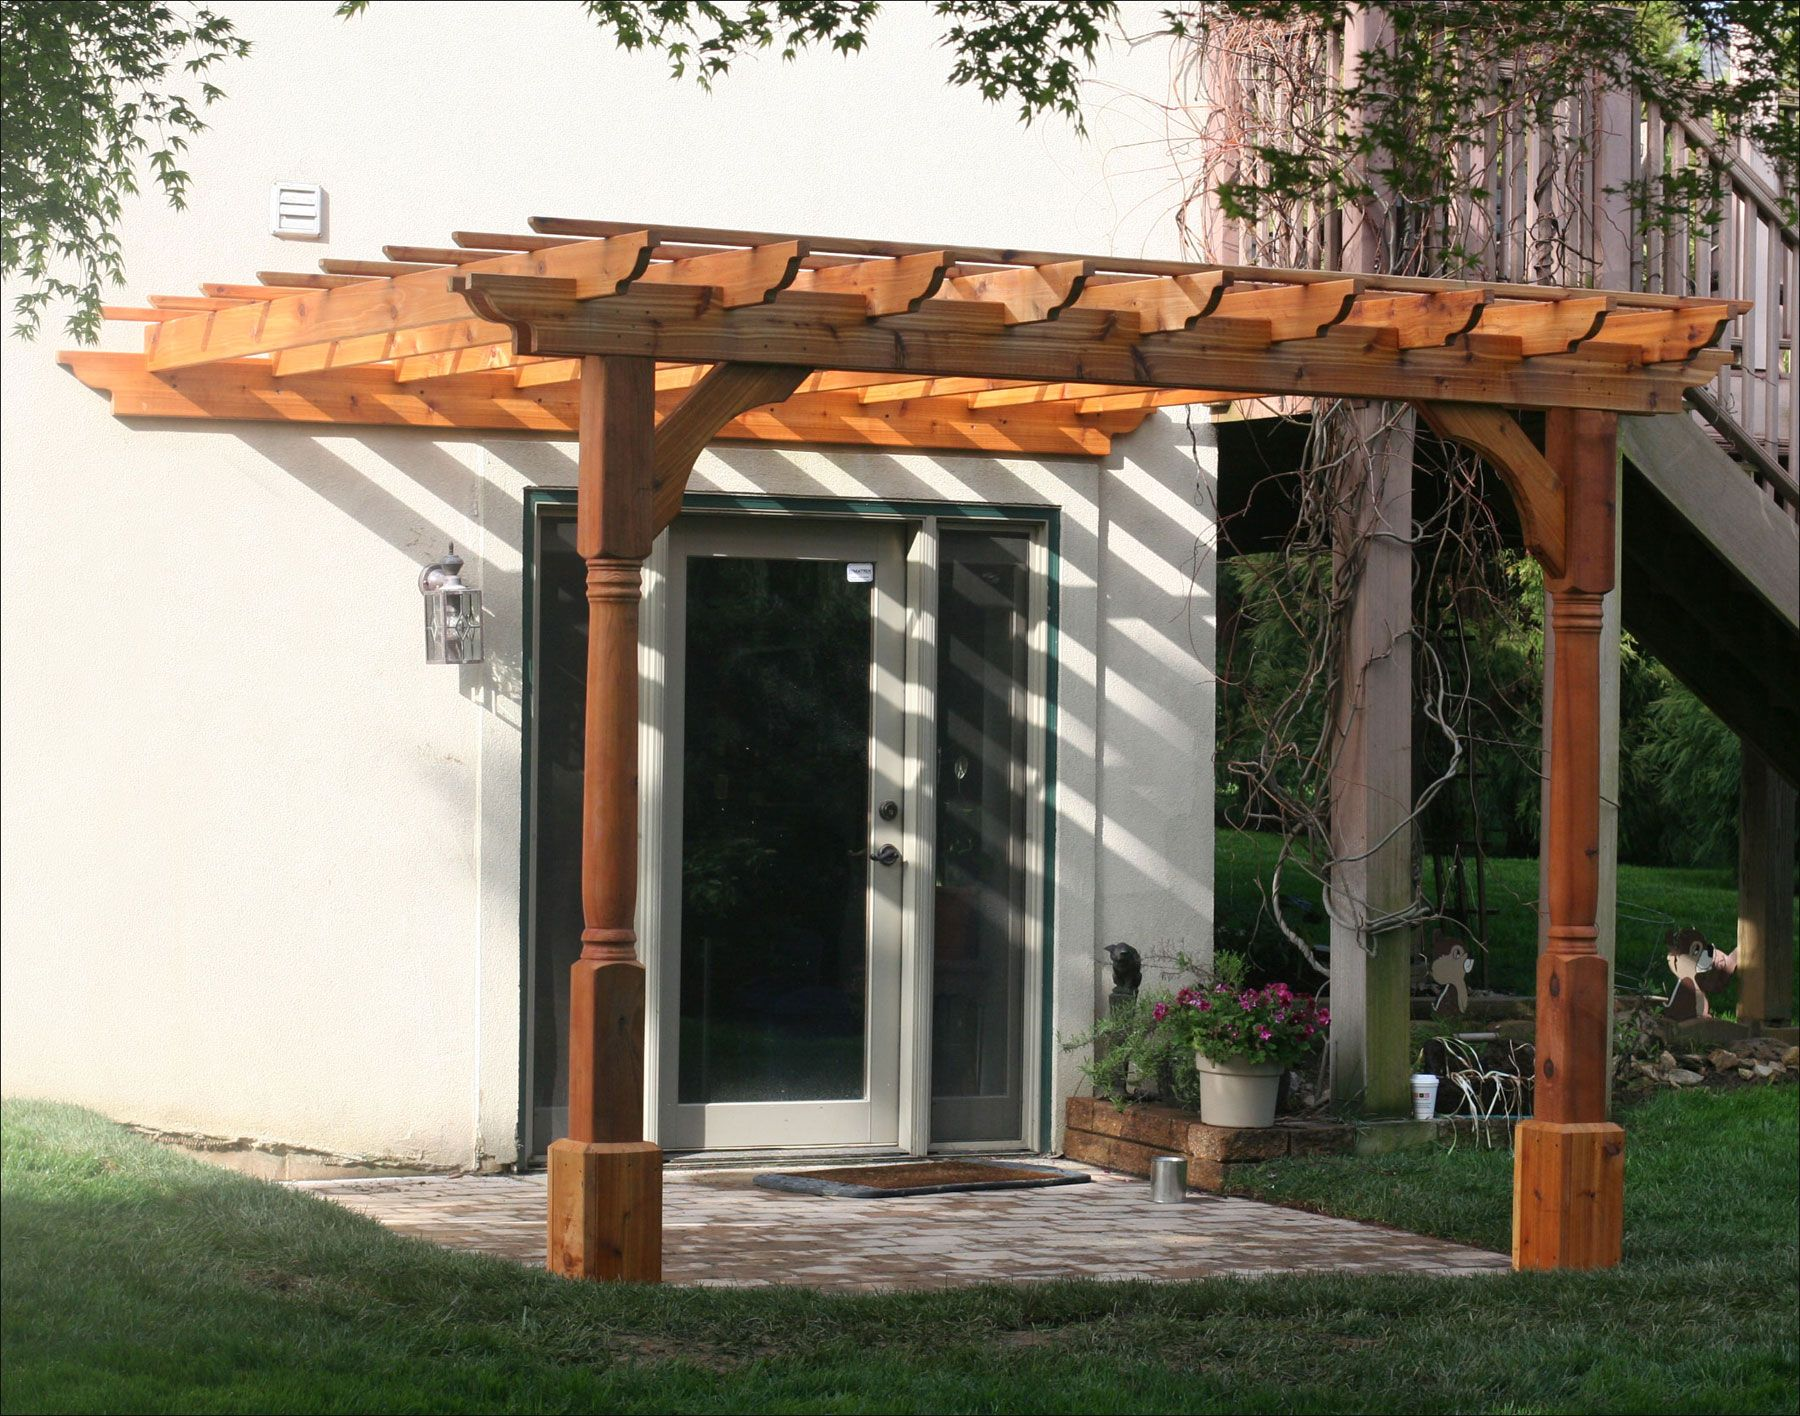 eyebrow pergola kits wall mount 10 x 10 cedar 2 beam pergola wall mount with cedar tone